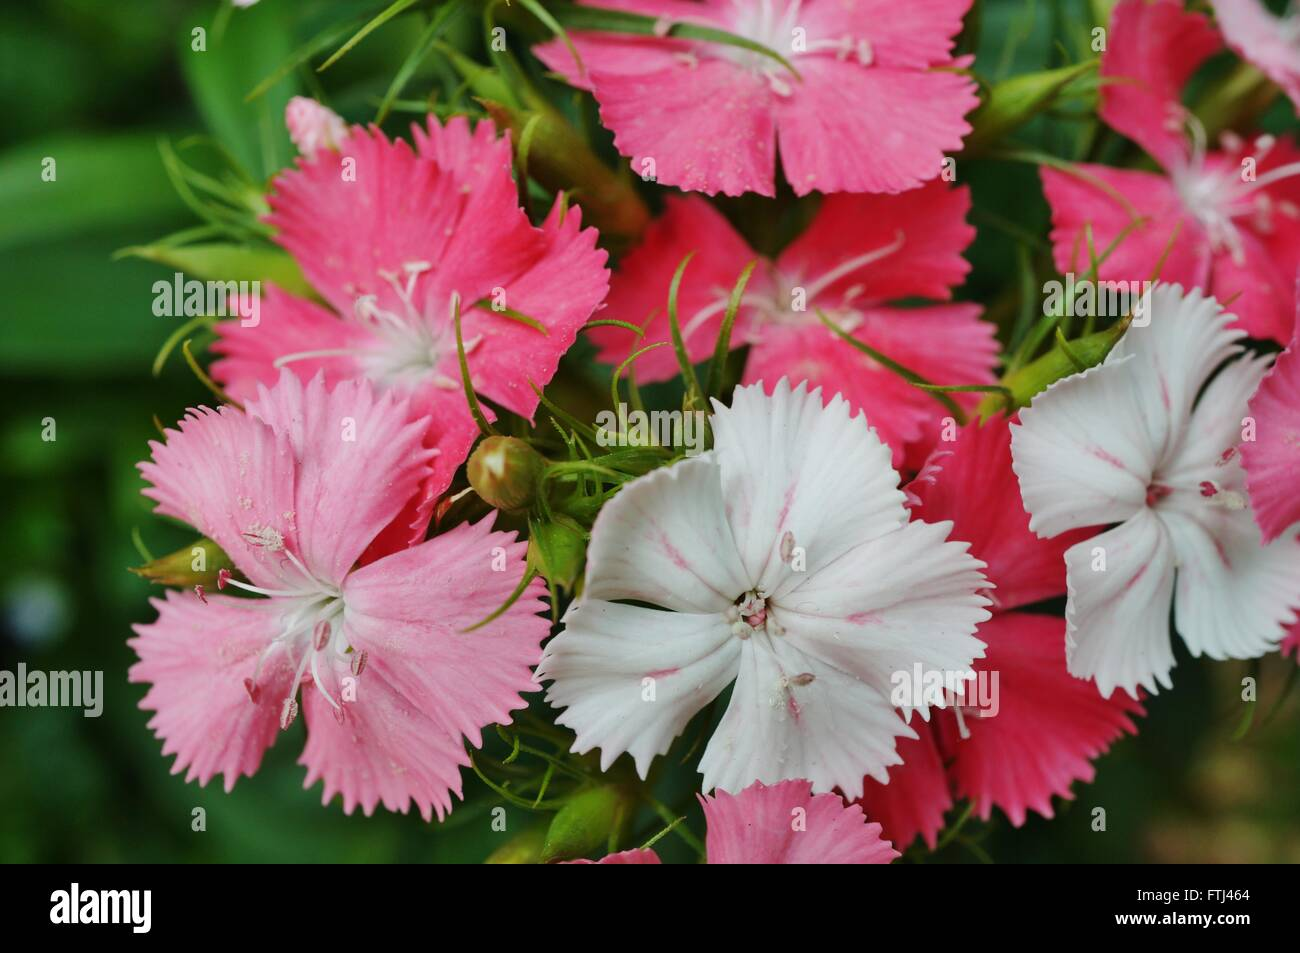 Pink and white sweet william dianthus flowers stock photo 101202028 pink and white sweet william dianthus flowers mightylinksfo